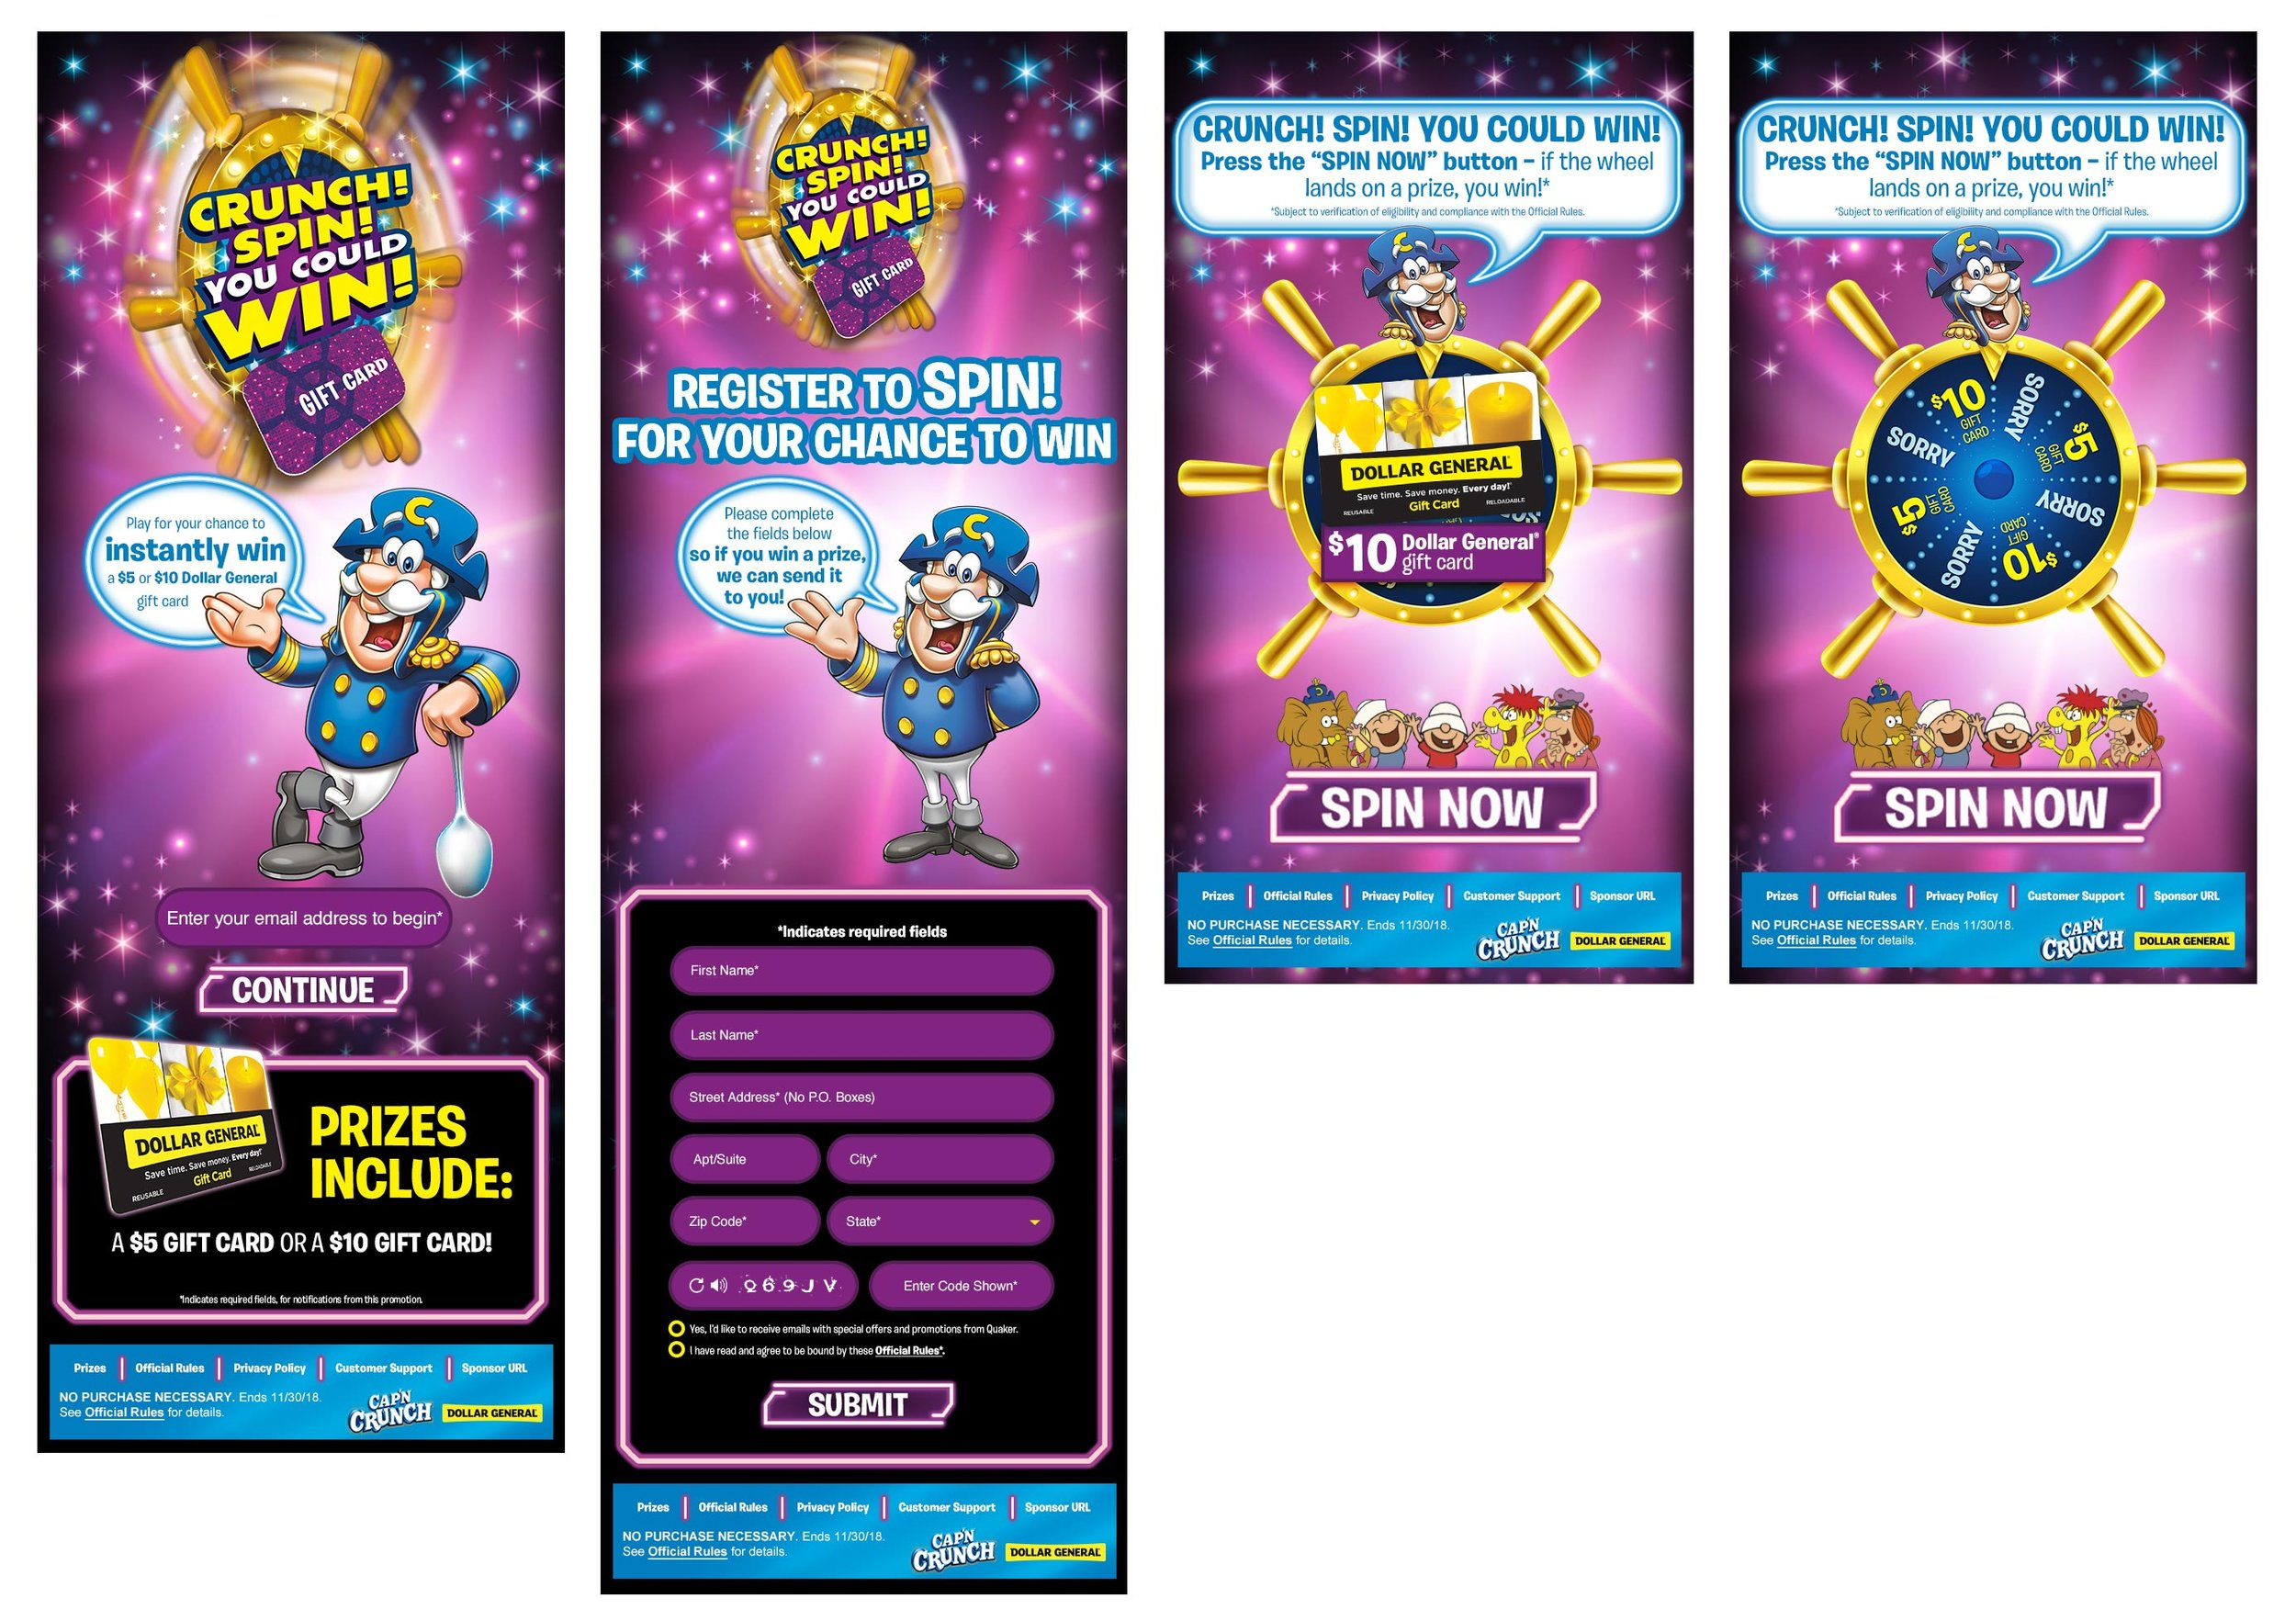 CAP'N CRUNCH SPIN TO WIN MOBILE SITE